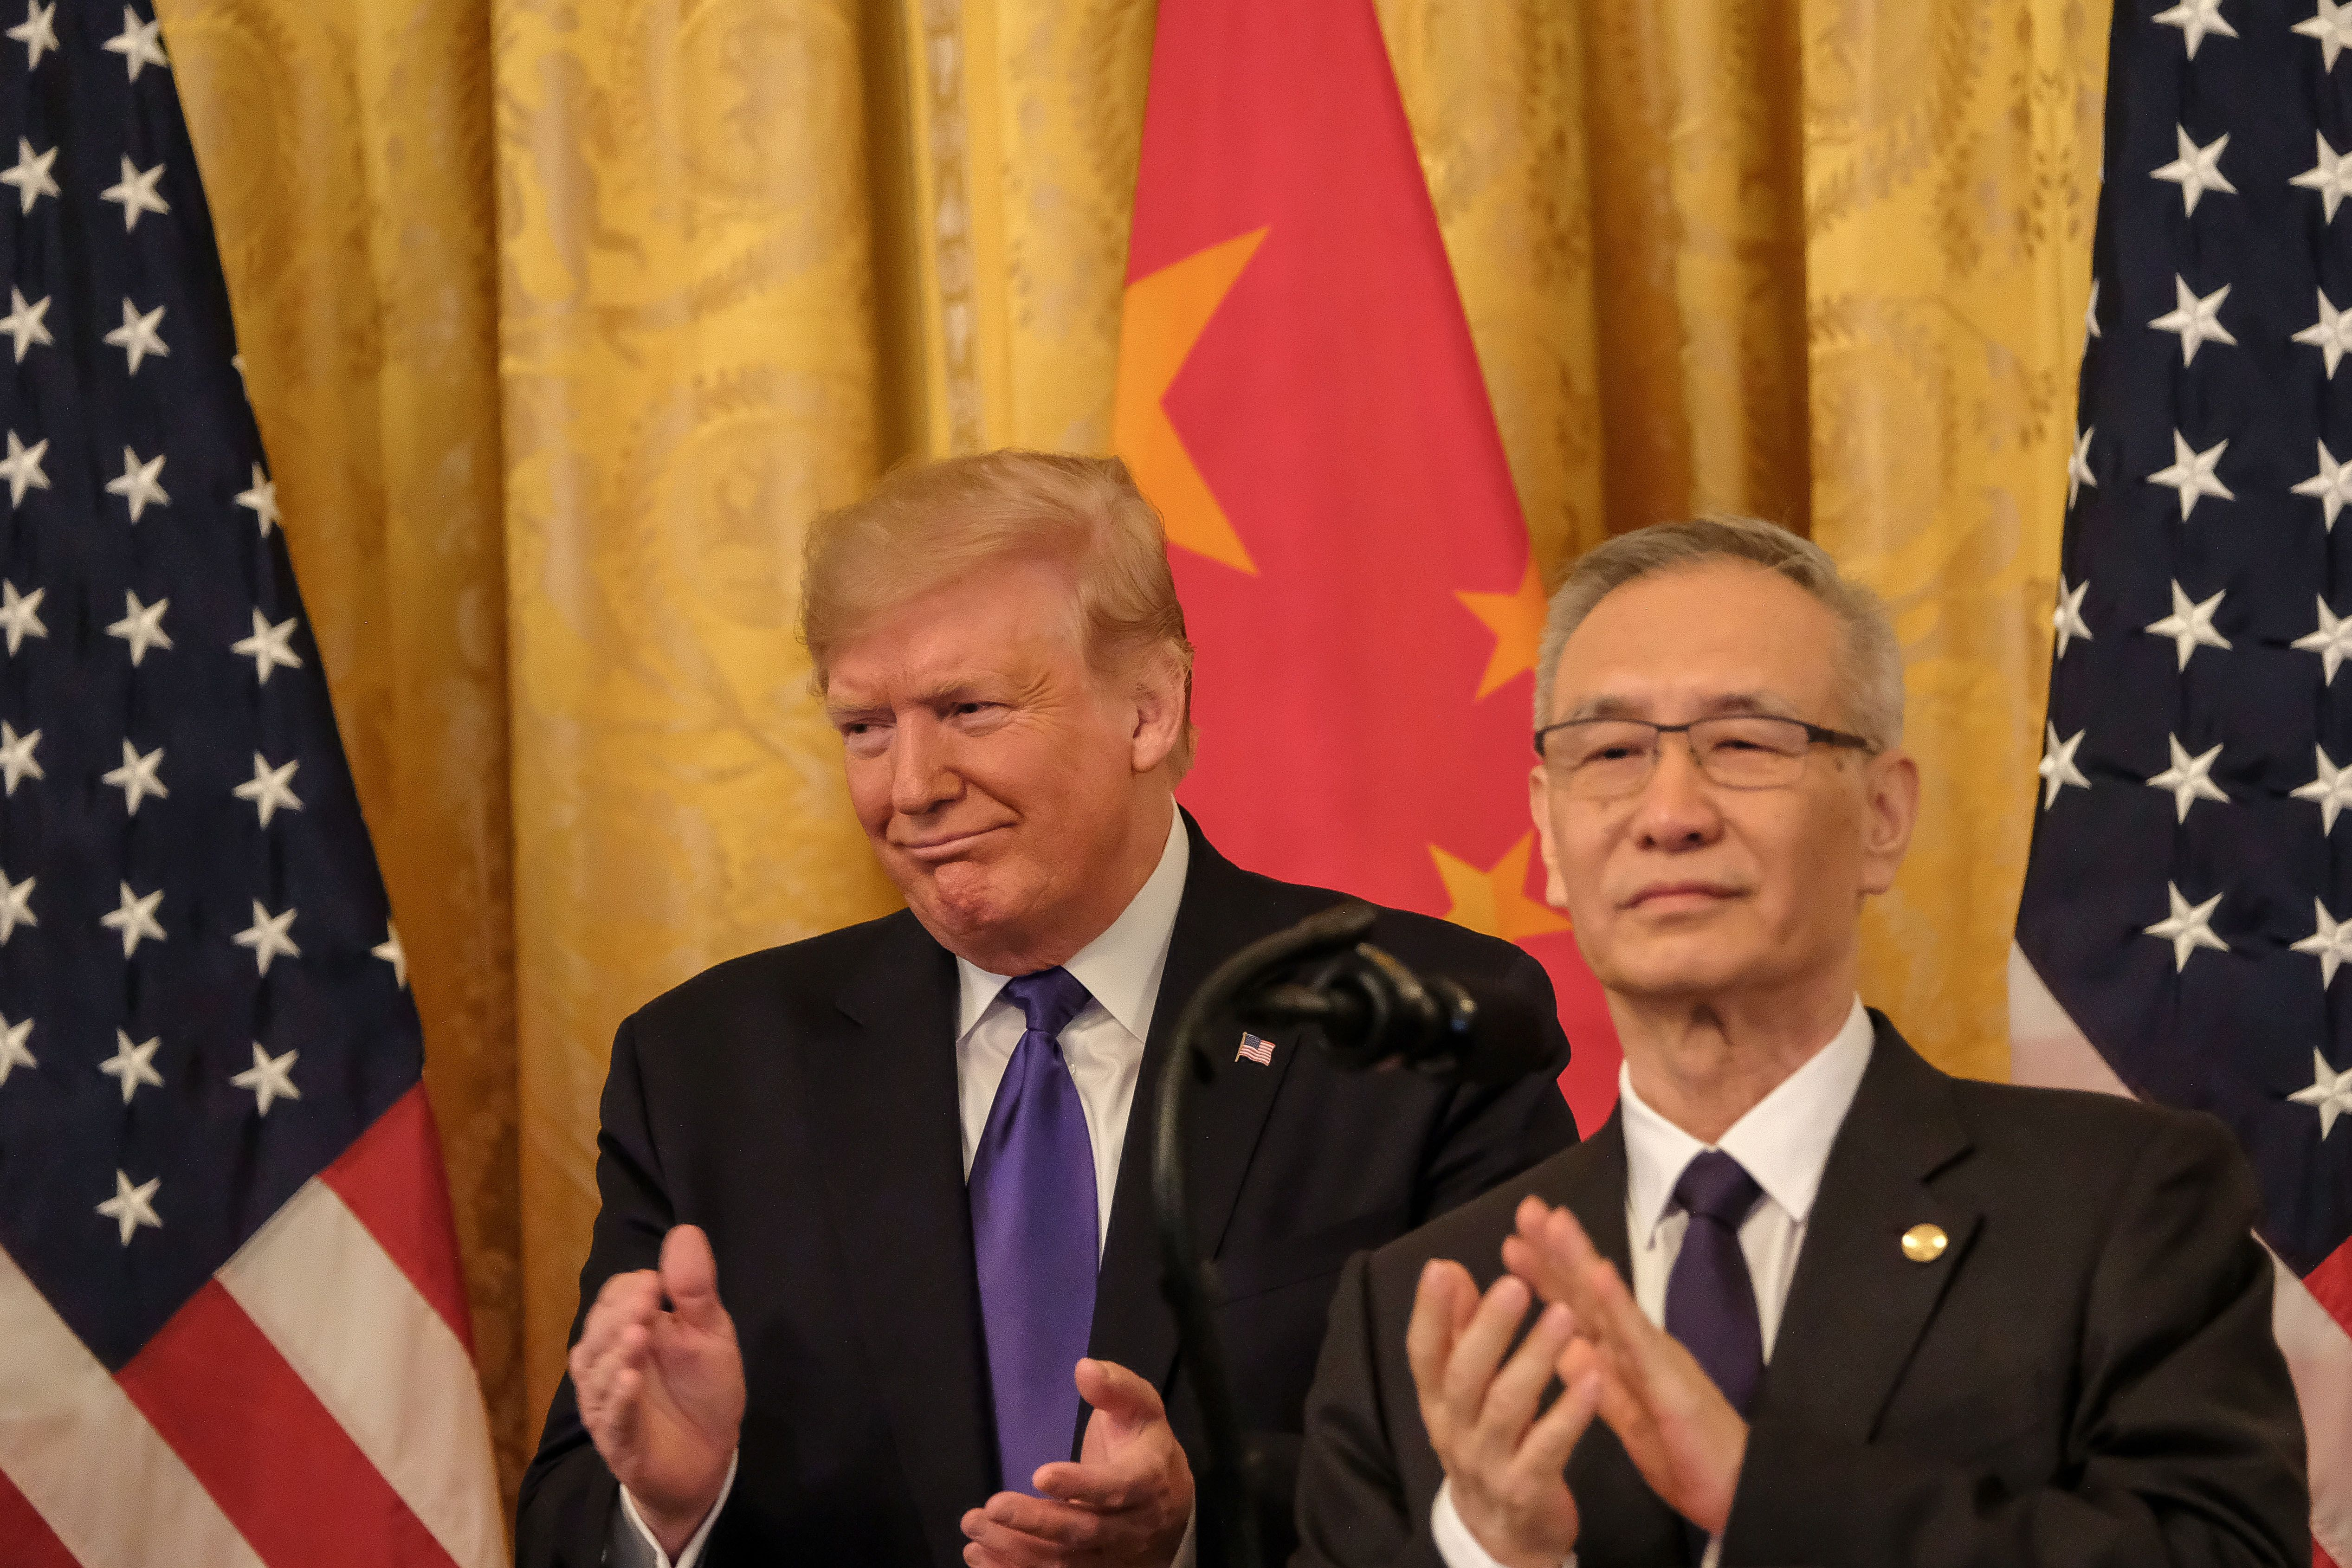 China agreed to cut its tariffs on $75 billion worth of U.S. goods imports as it looks to maintain its phase one trade deal commitments.